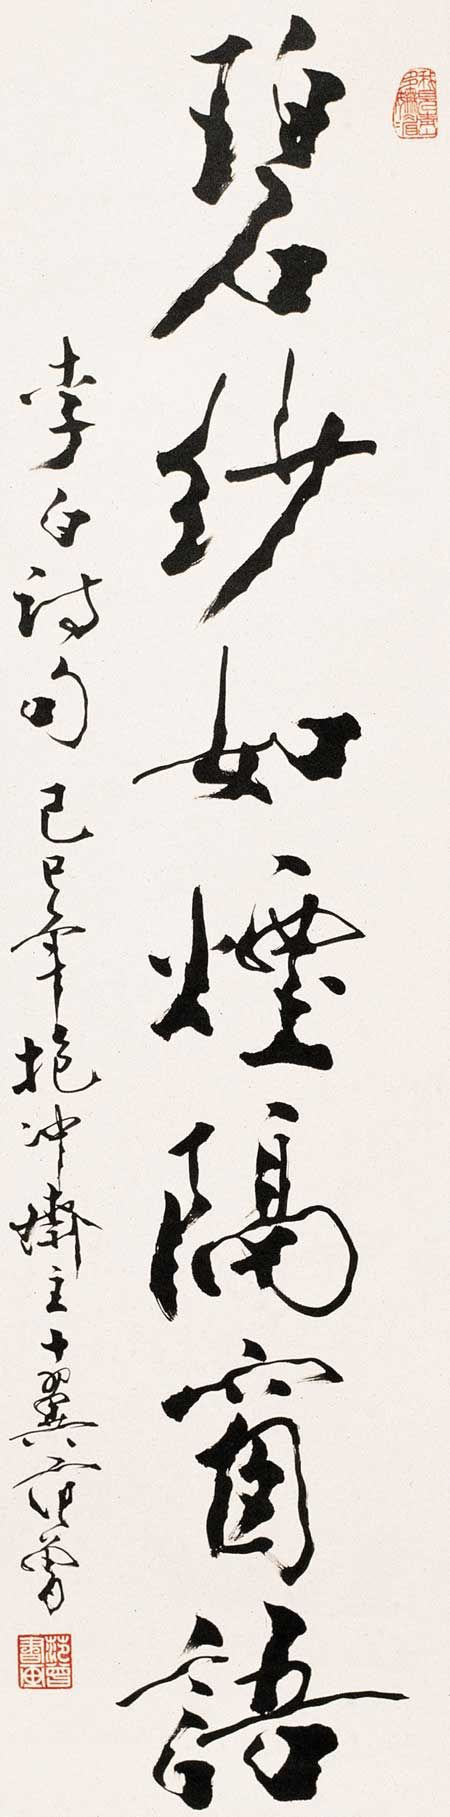 788 Best Images About Calligraphy On Pinterest